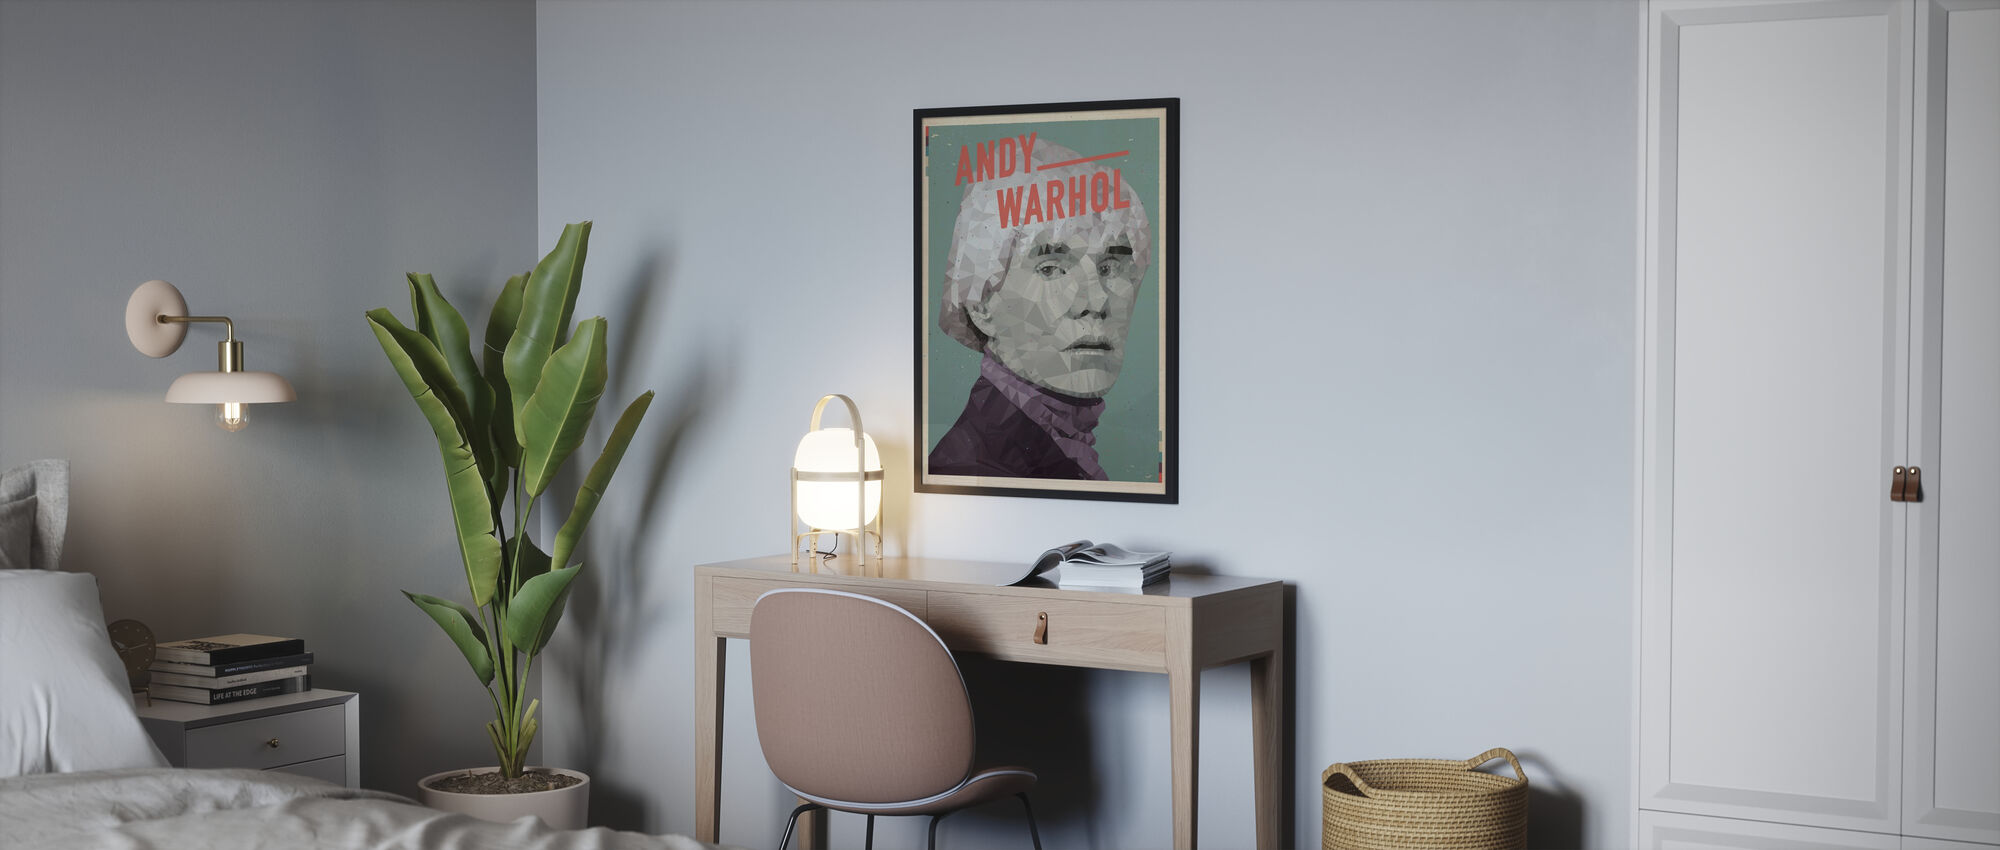 15 Minutes of Fame - Poster - Bedroom